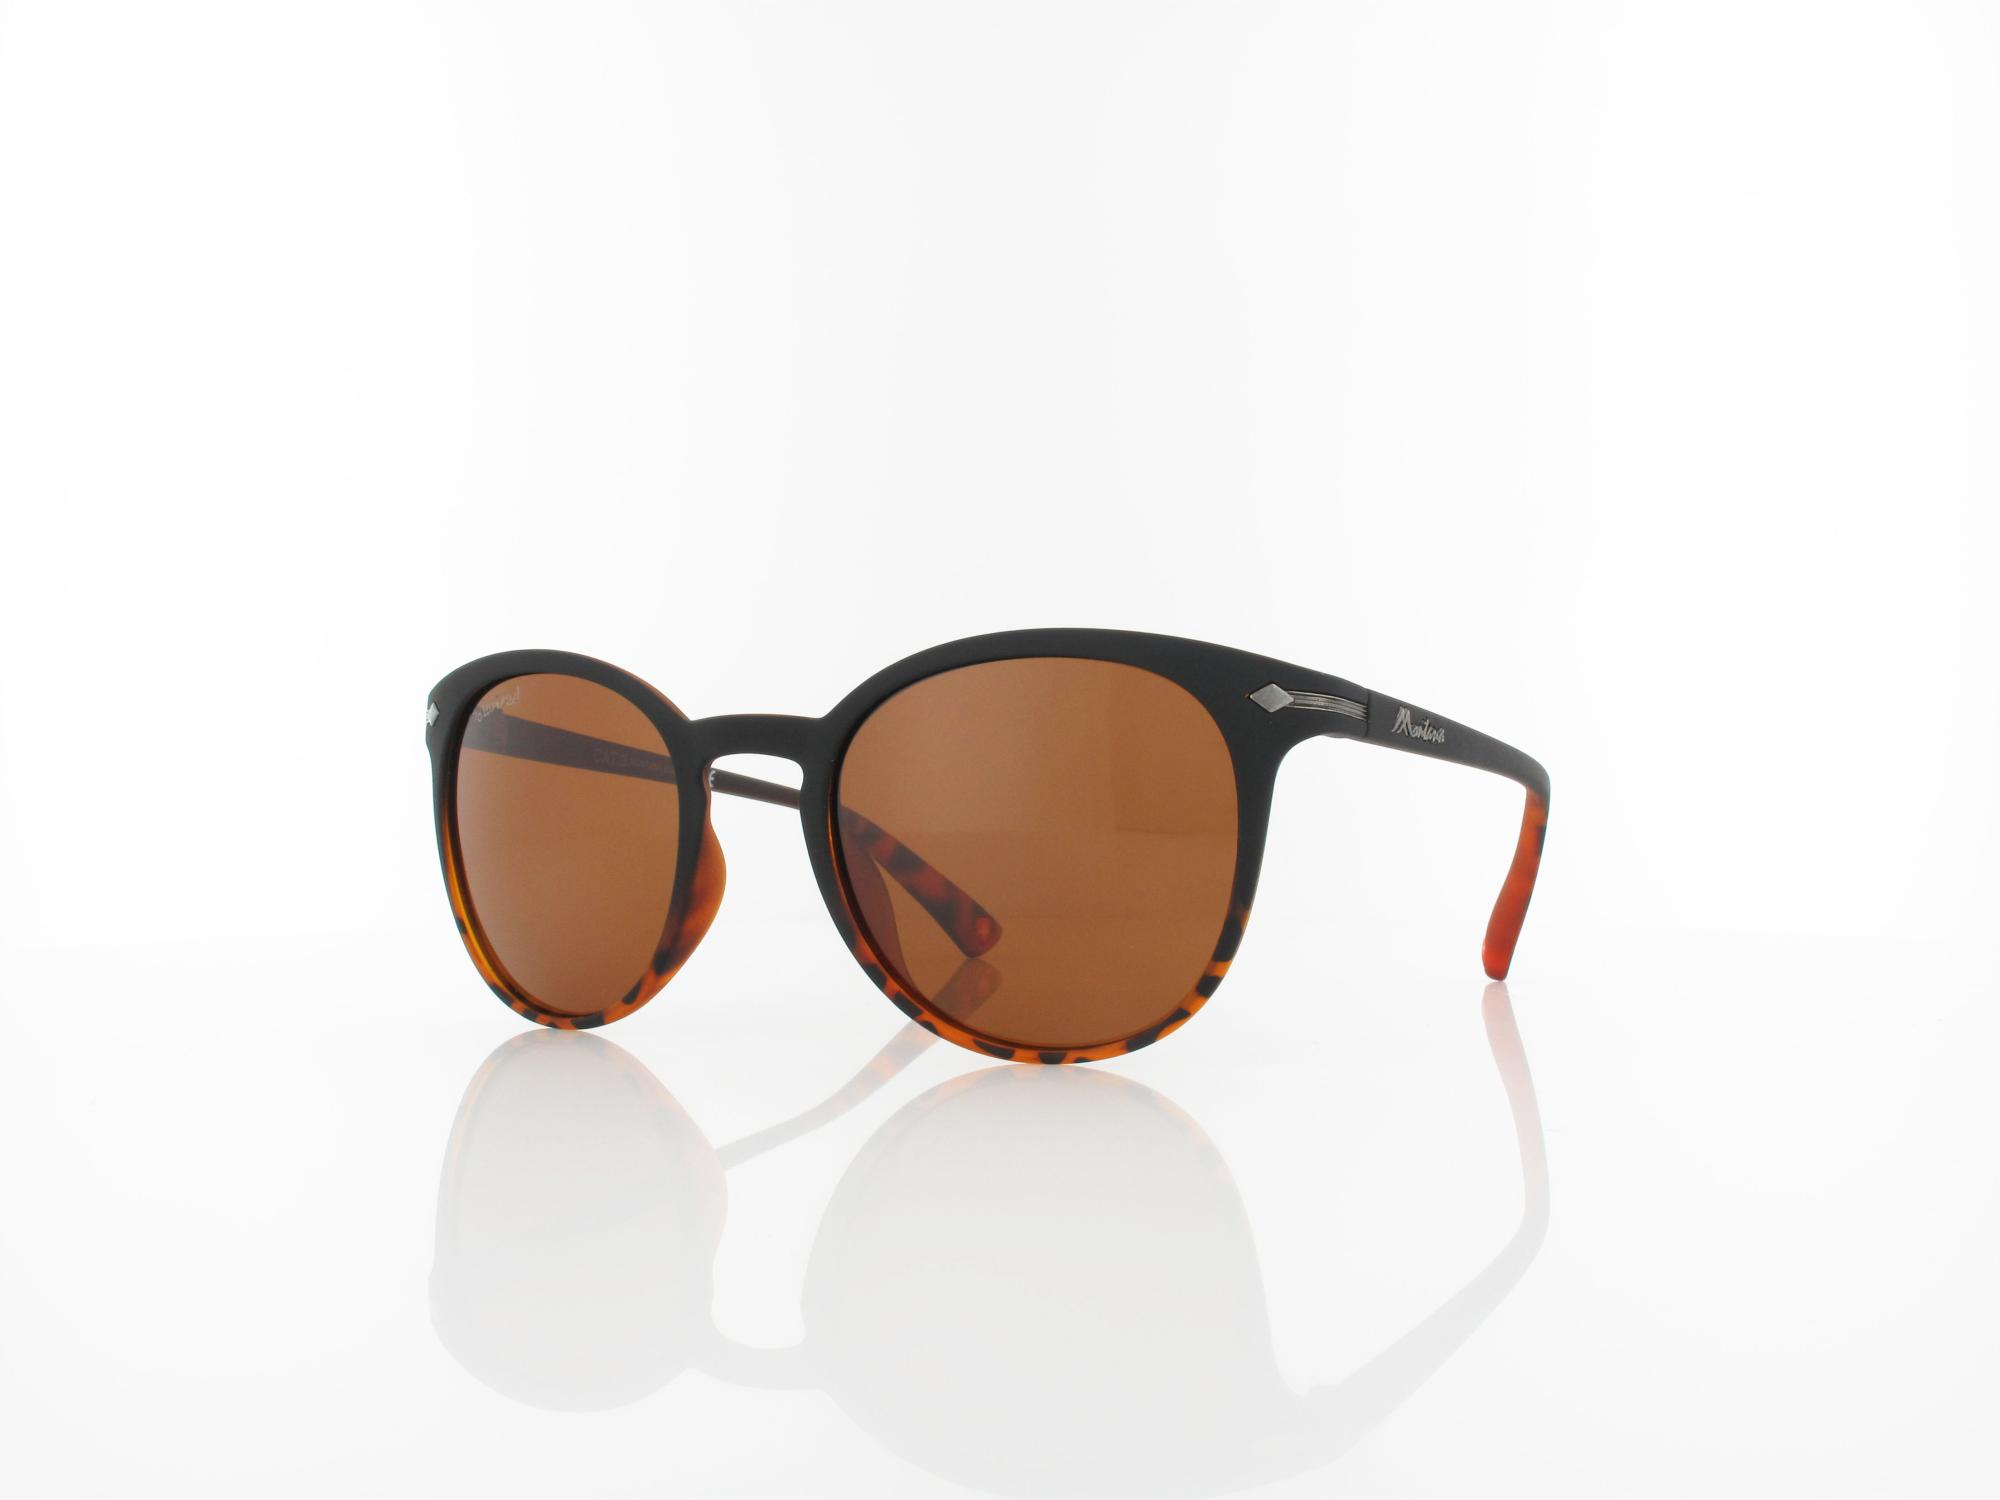 Brilando | MP50 B 50 | matte black havana / brown